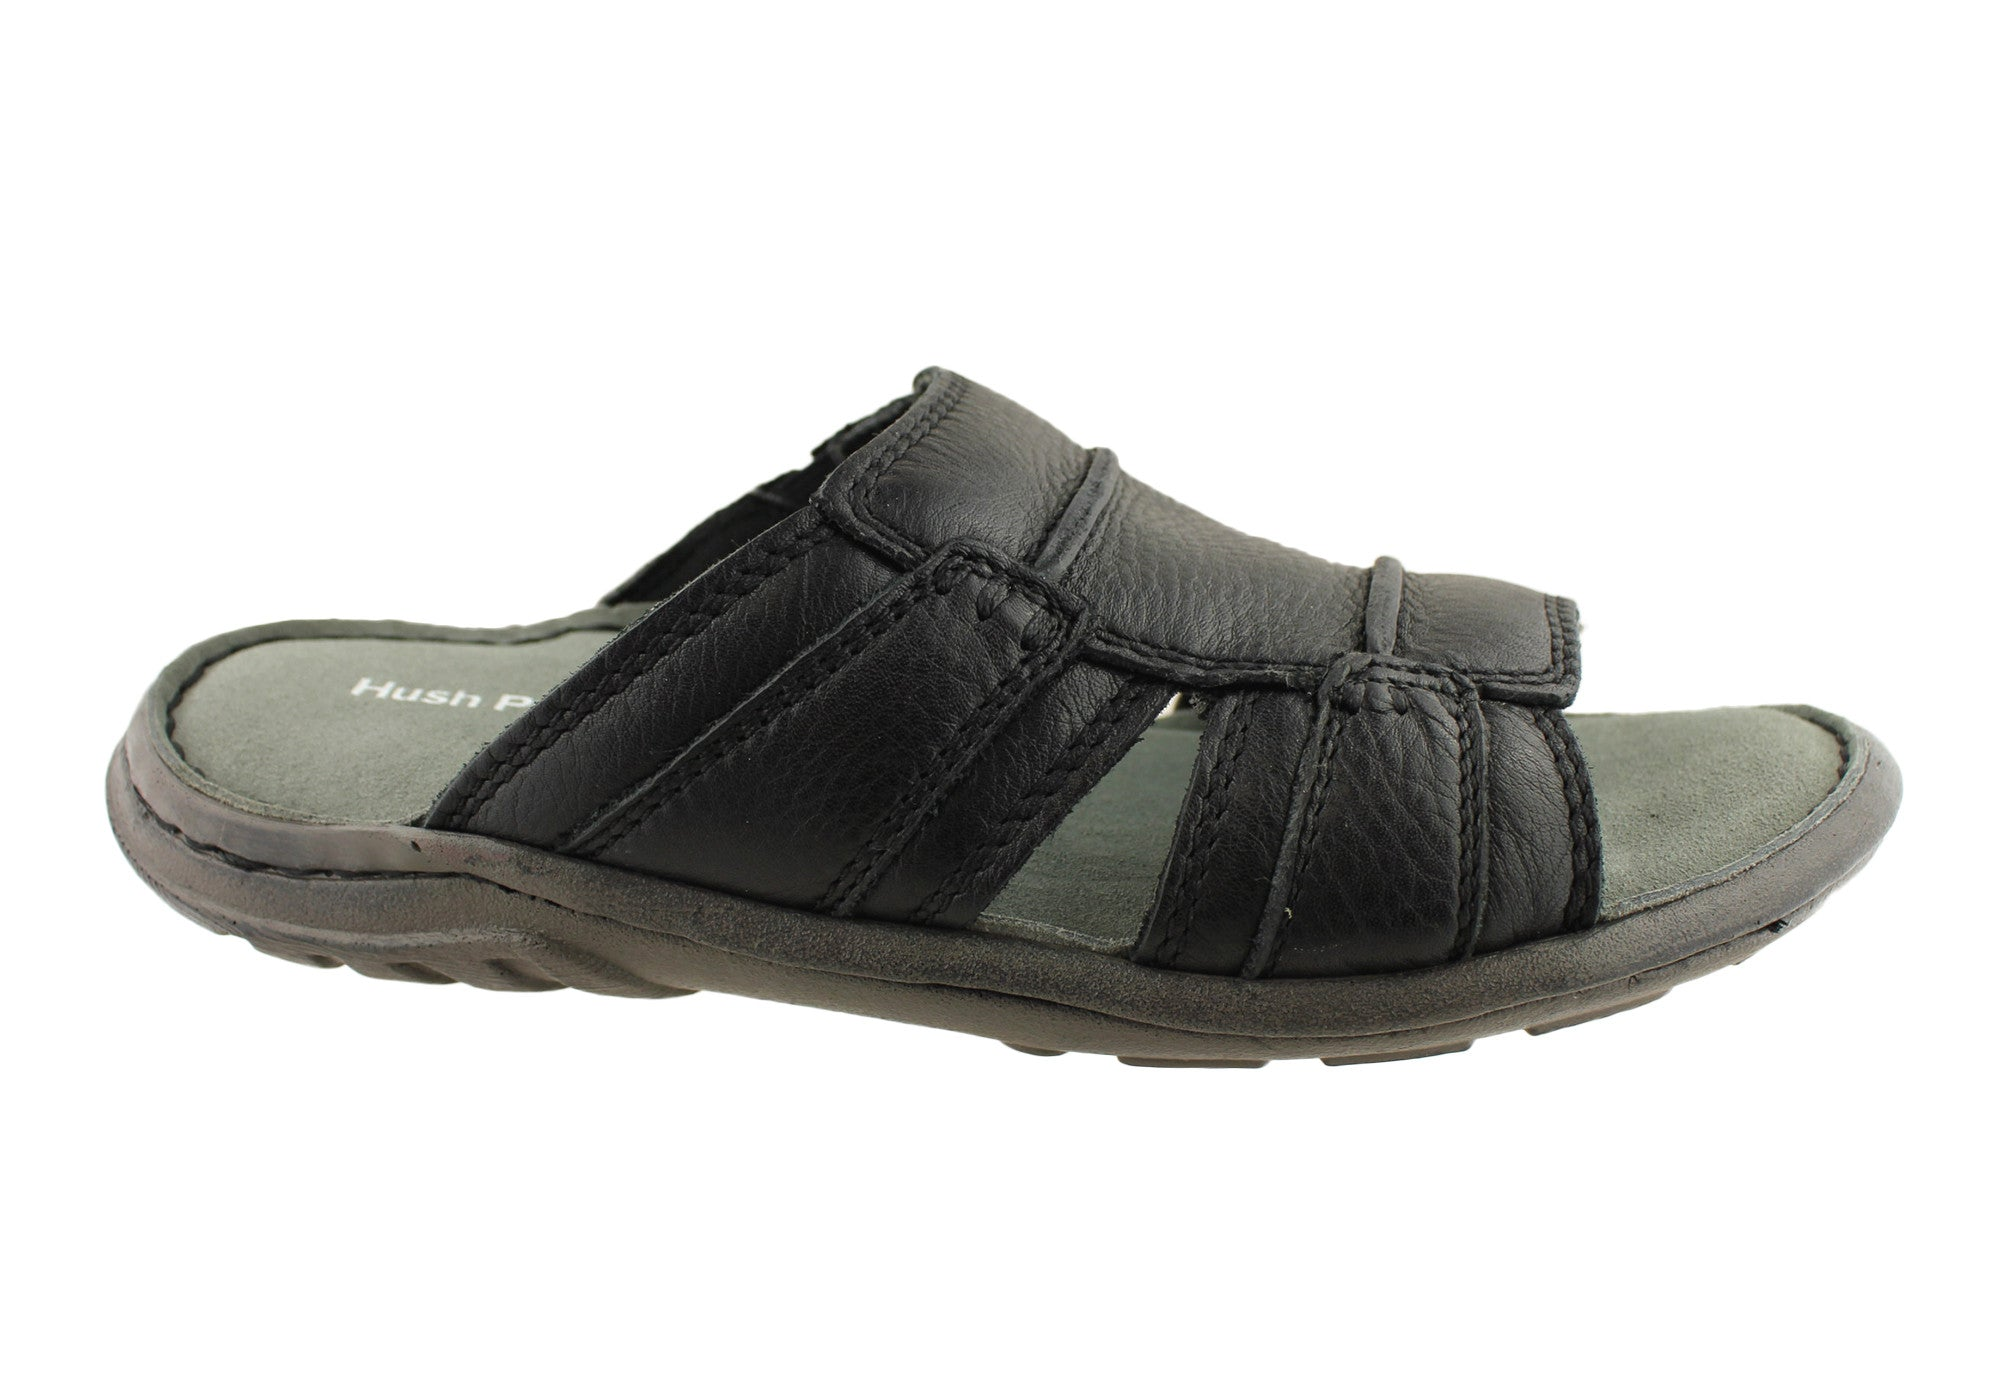 Hush Puppies Actual Mens Leather Sandals Brand House Direct